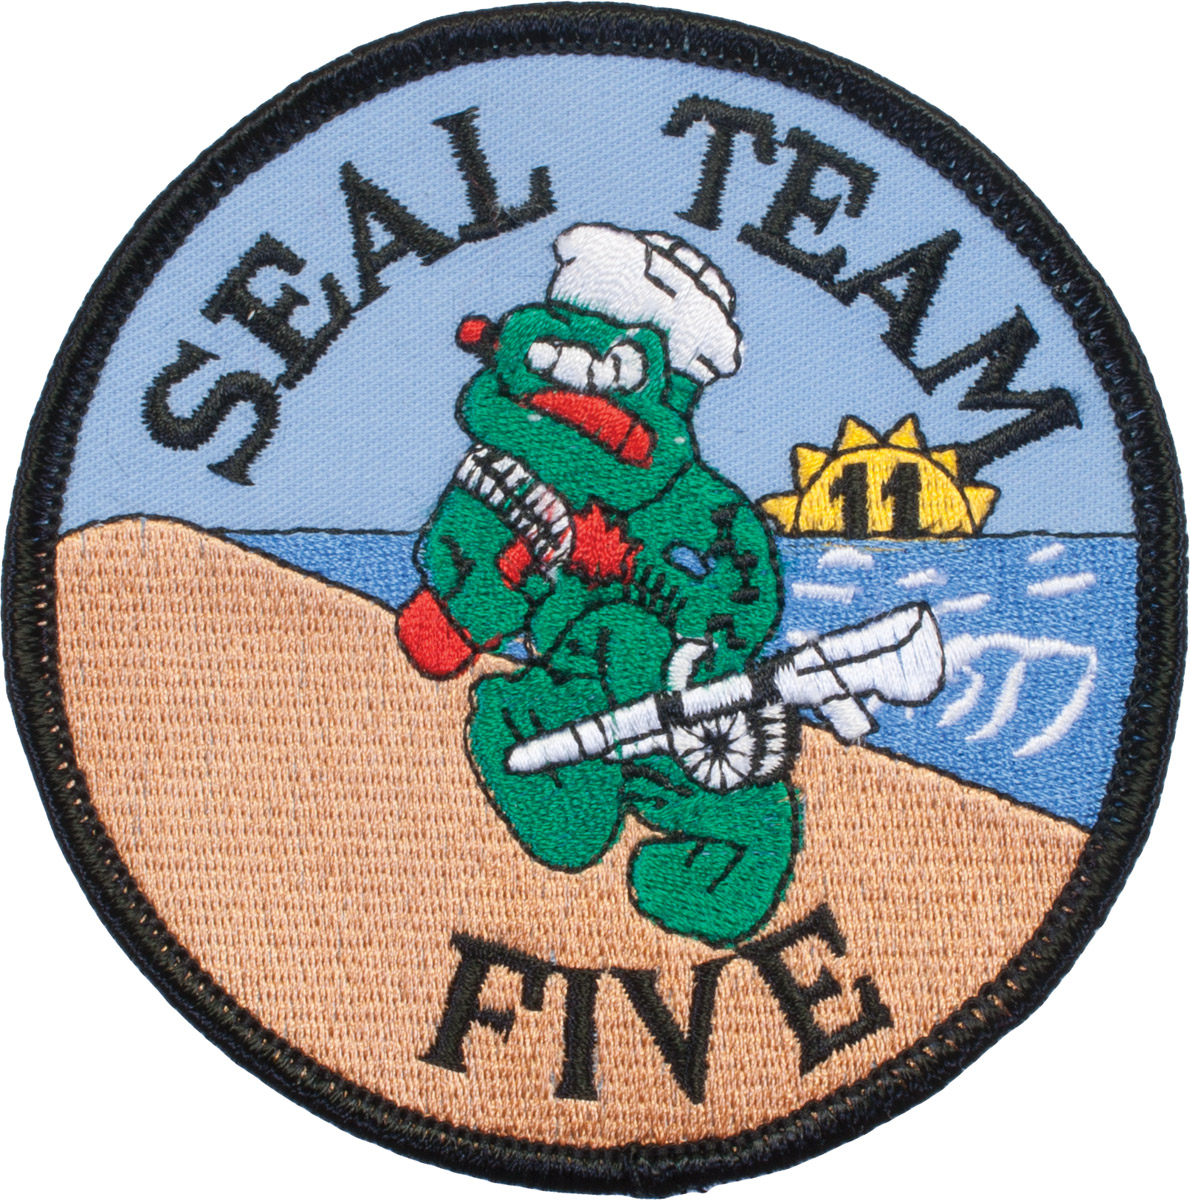 N-171 United States Navy Seal Team 5 Patch | US Military